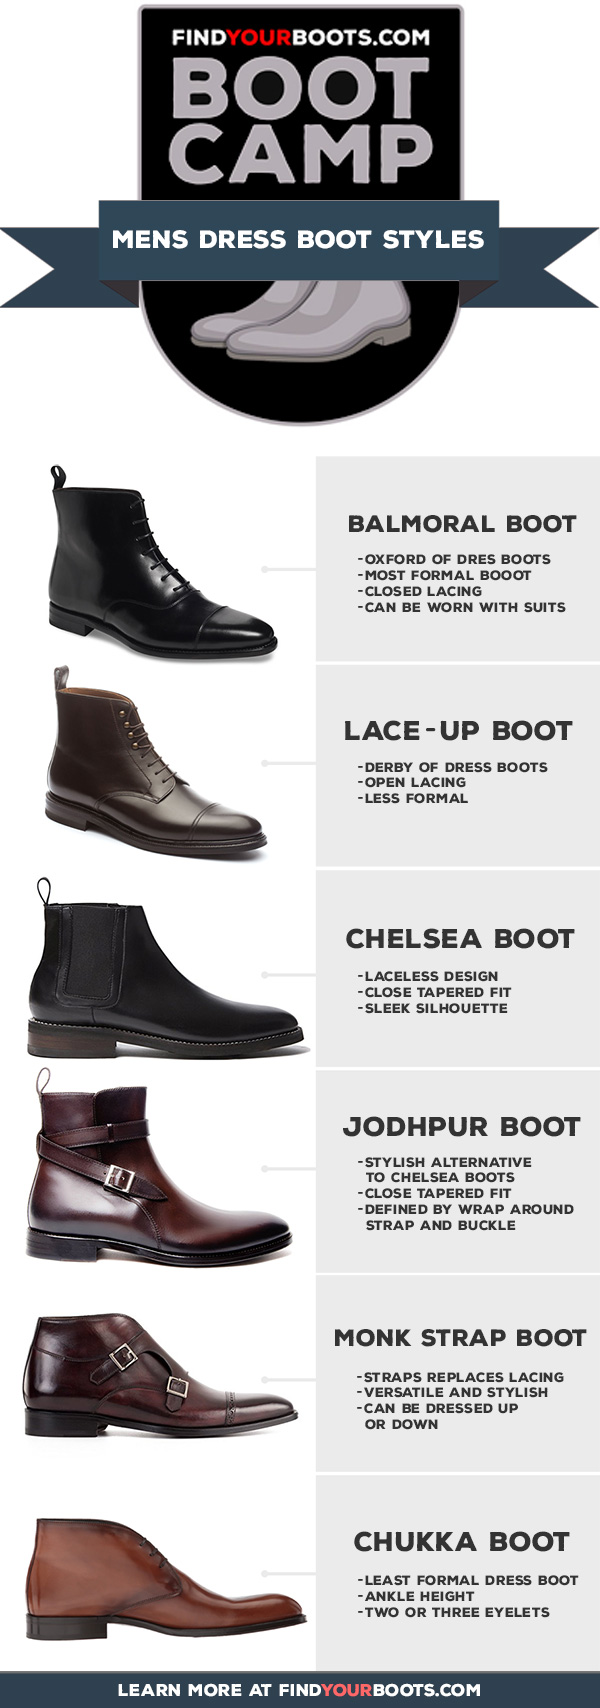 mens-dress-boots-dress-boot-styles-for-men.jpg